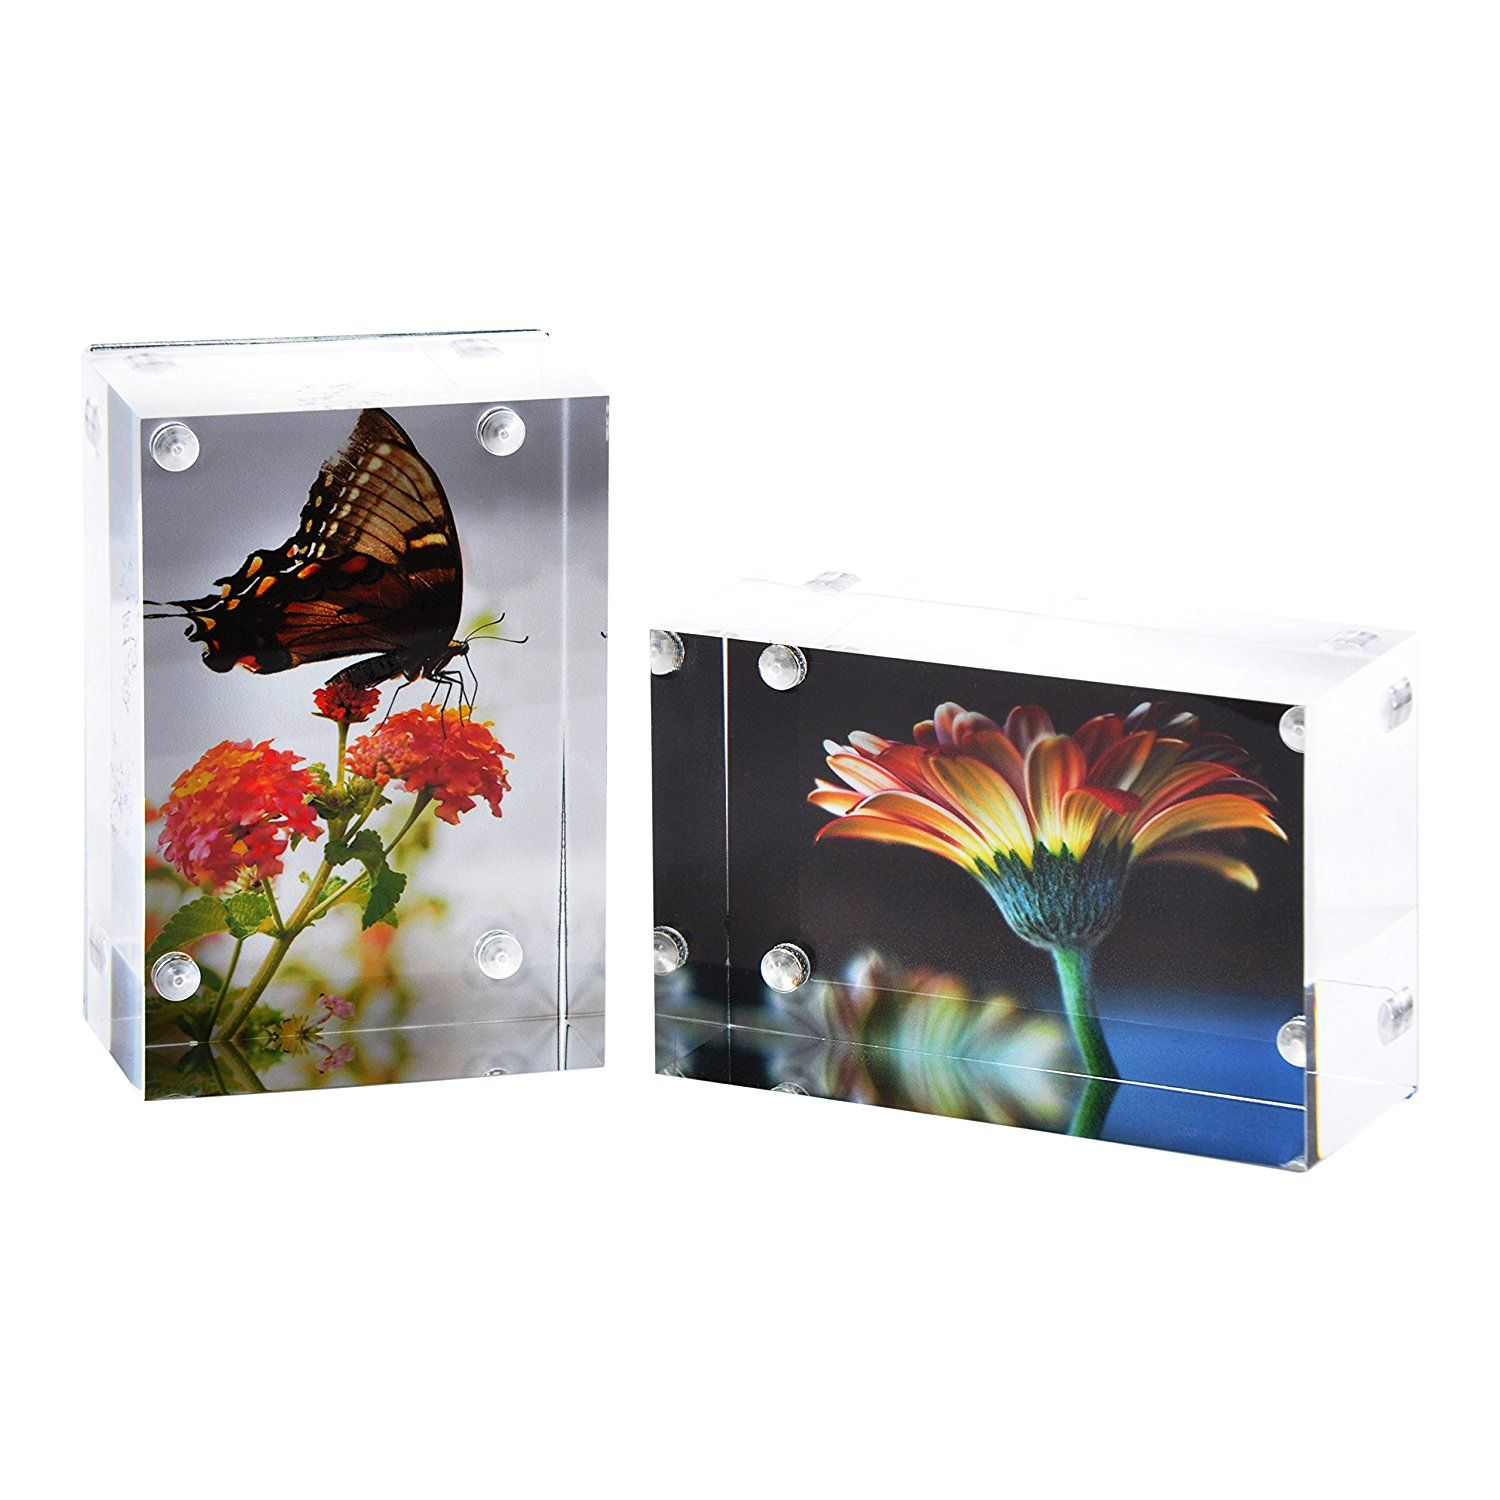 2 pk wallet sized magnetic photo frame elegantly display photos wallet sized magnetic photo frame elegantly display photos in homeoffice magnetic picture frames for photos with clear acrylic and metal backing thick jeuxipadfo Images